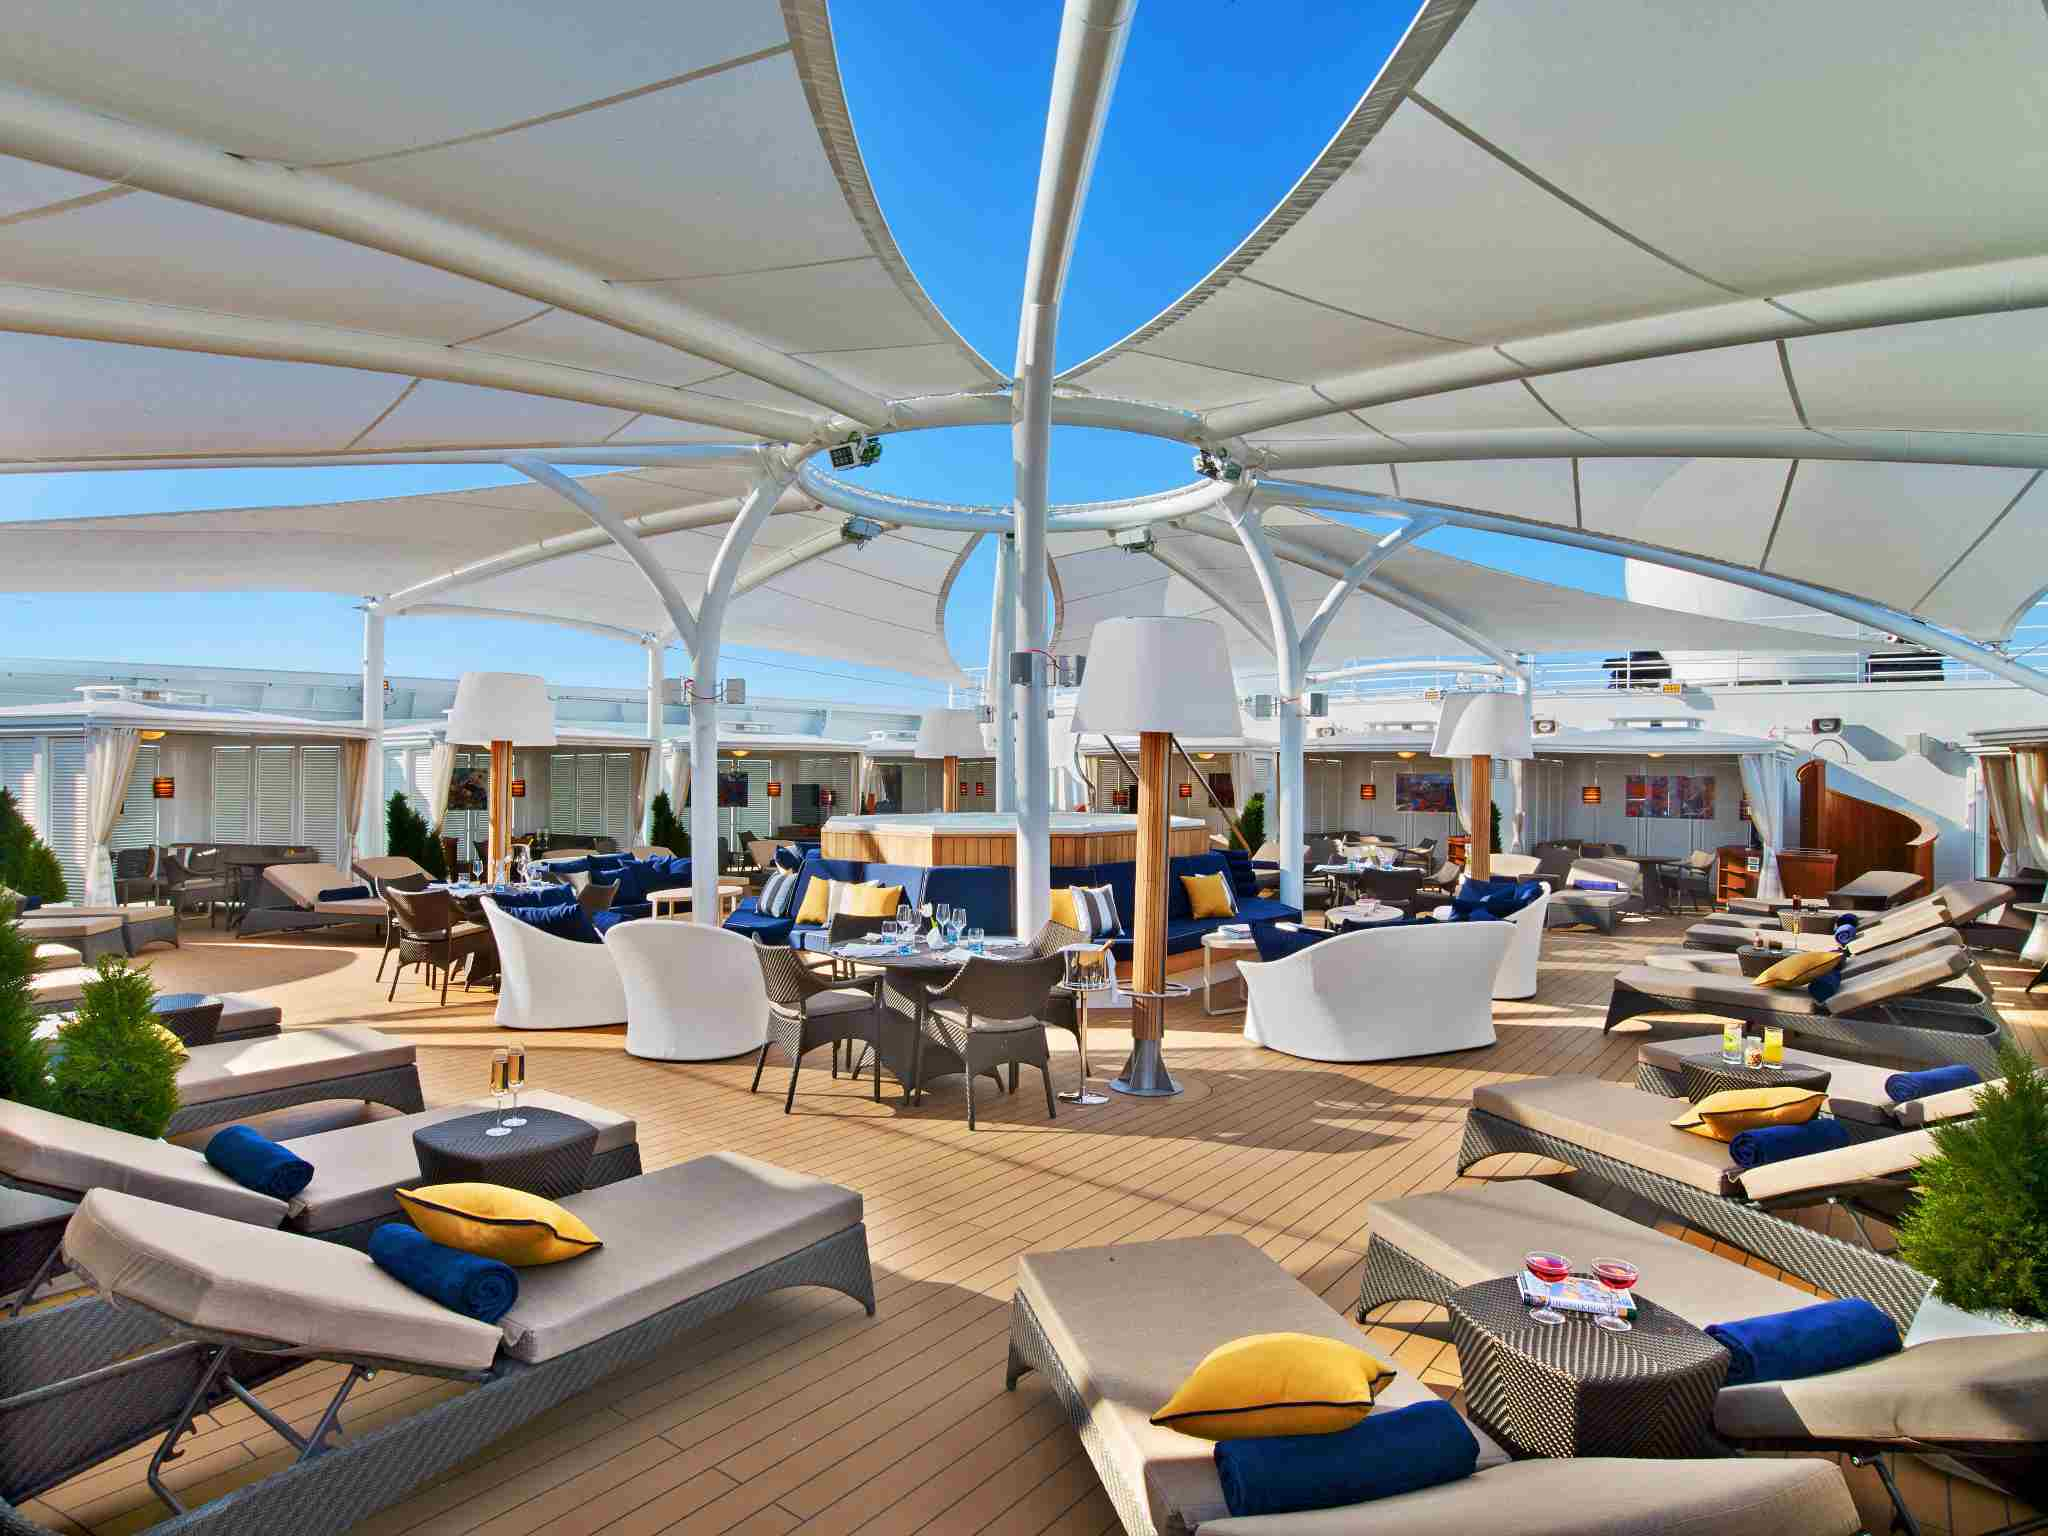 The Retreat on the Seabourn Ovation